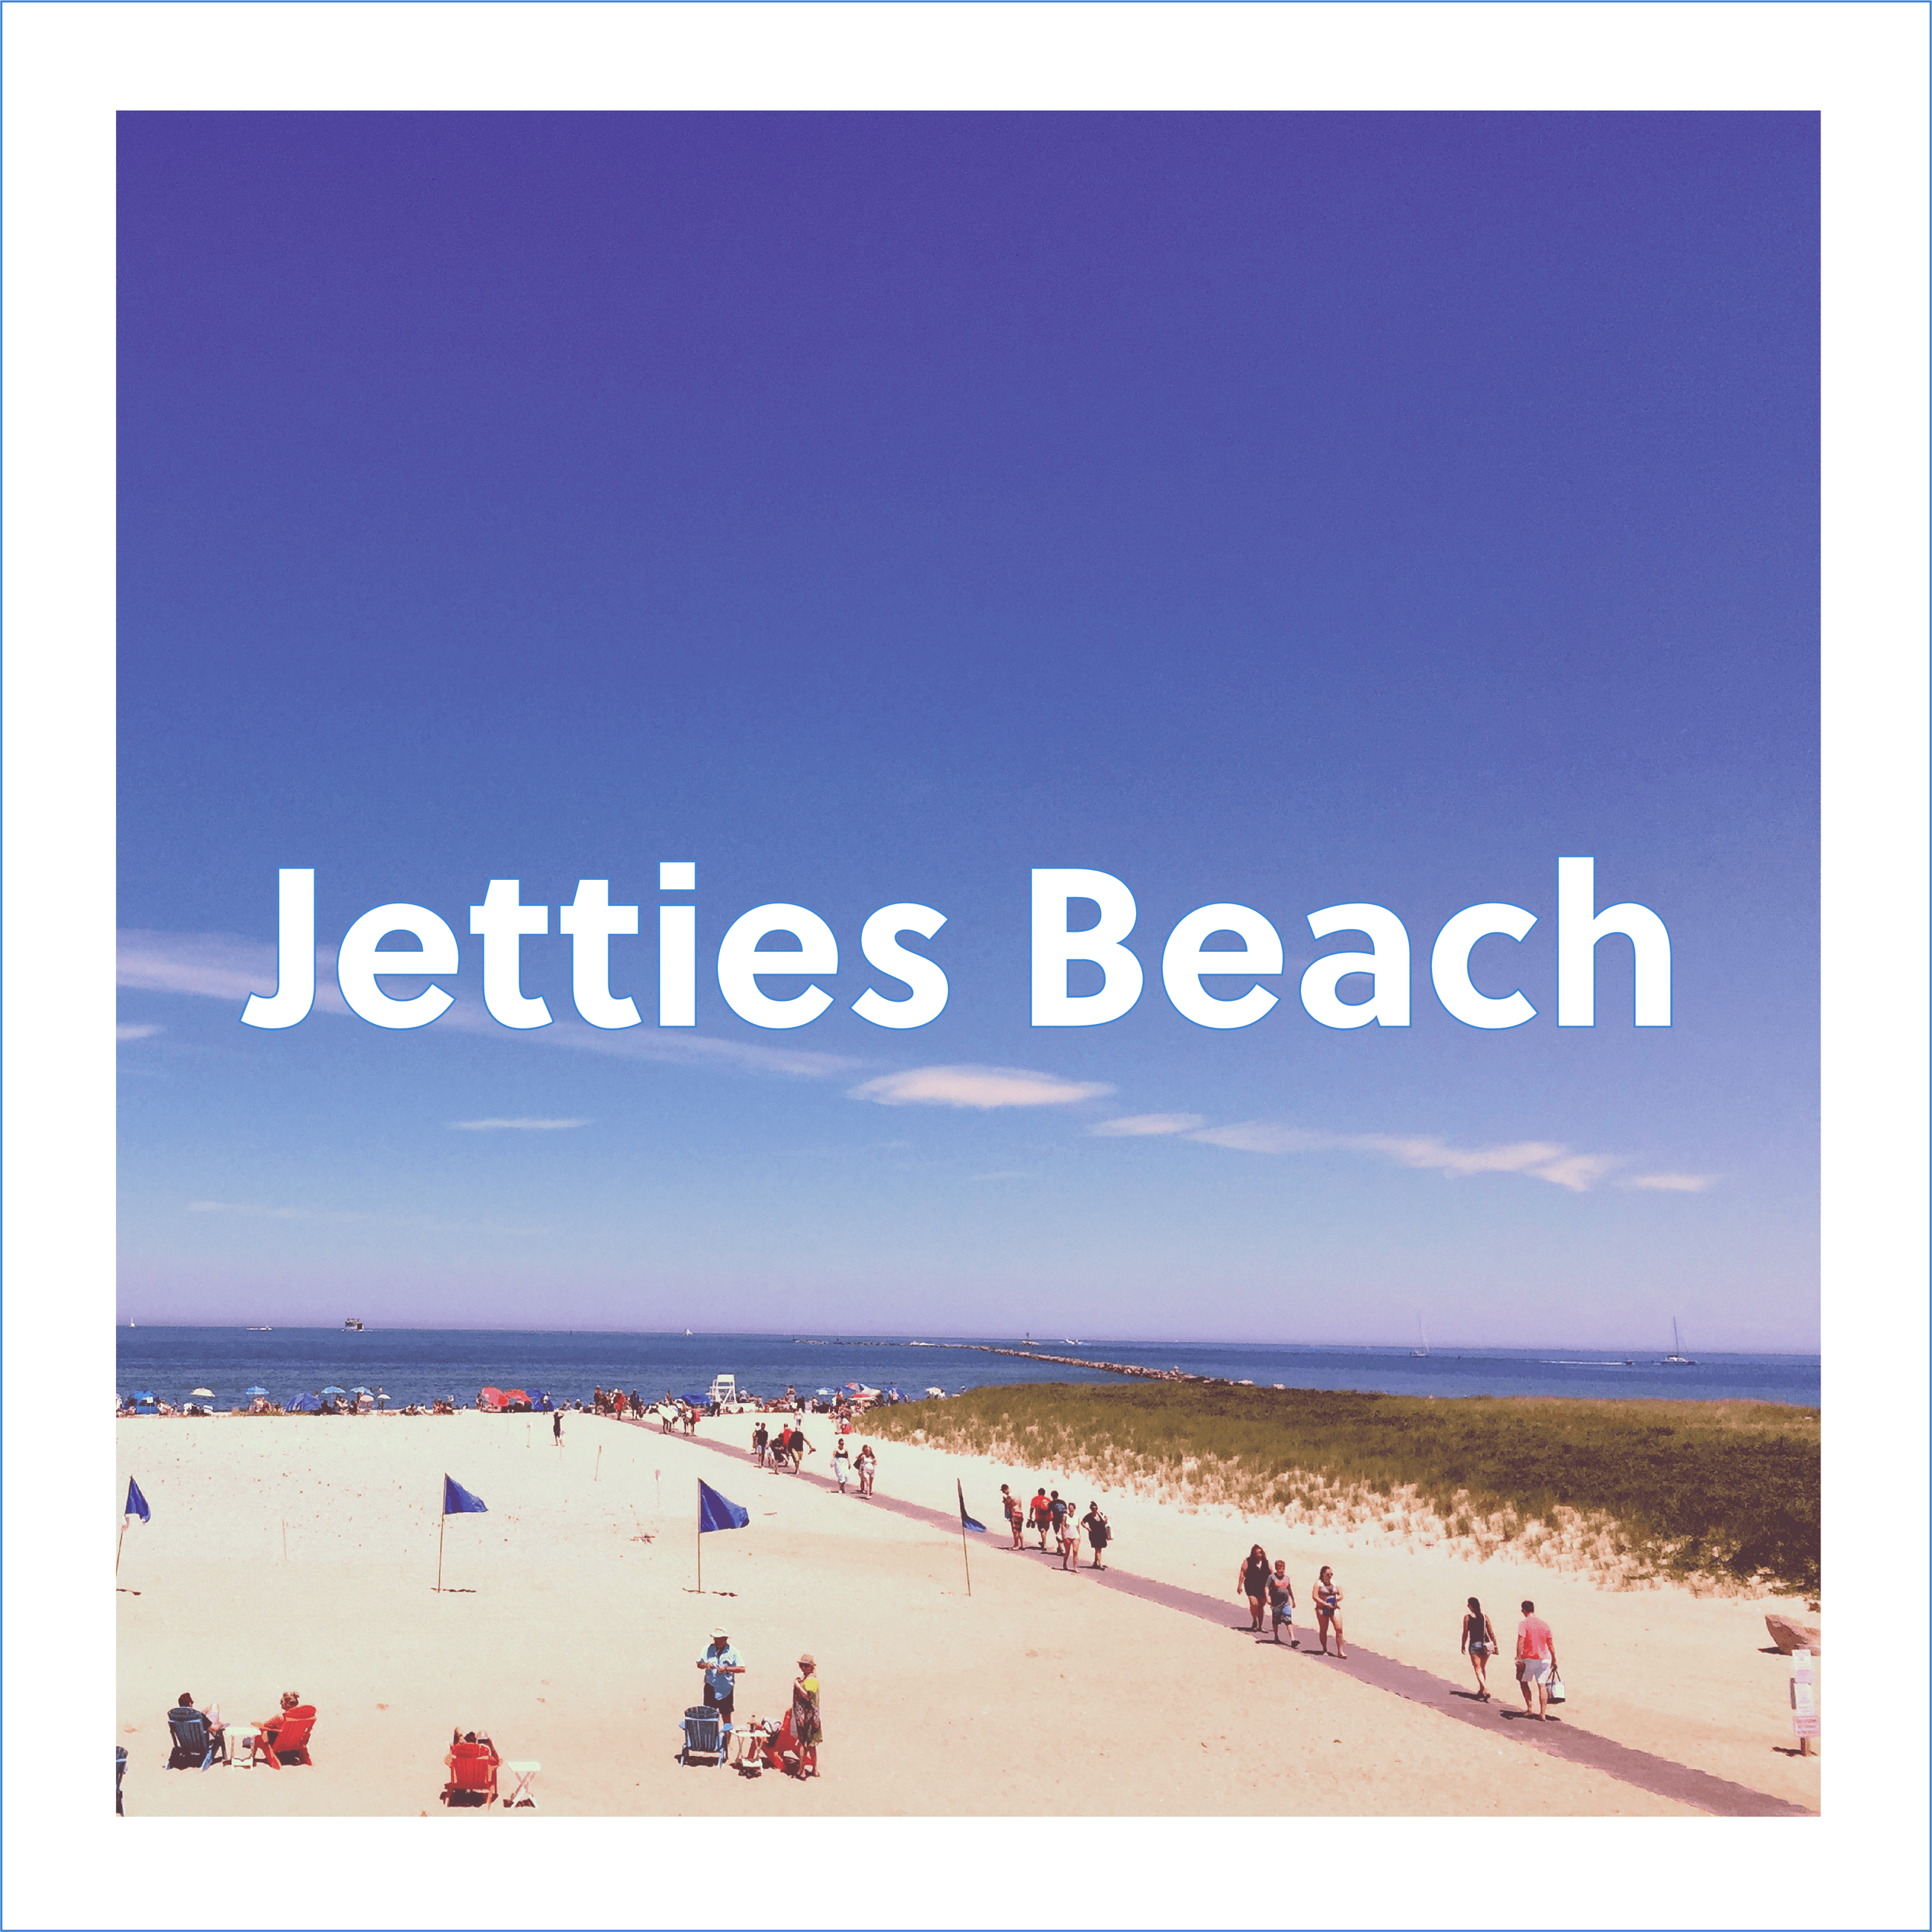 Jetties Beach